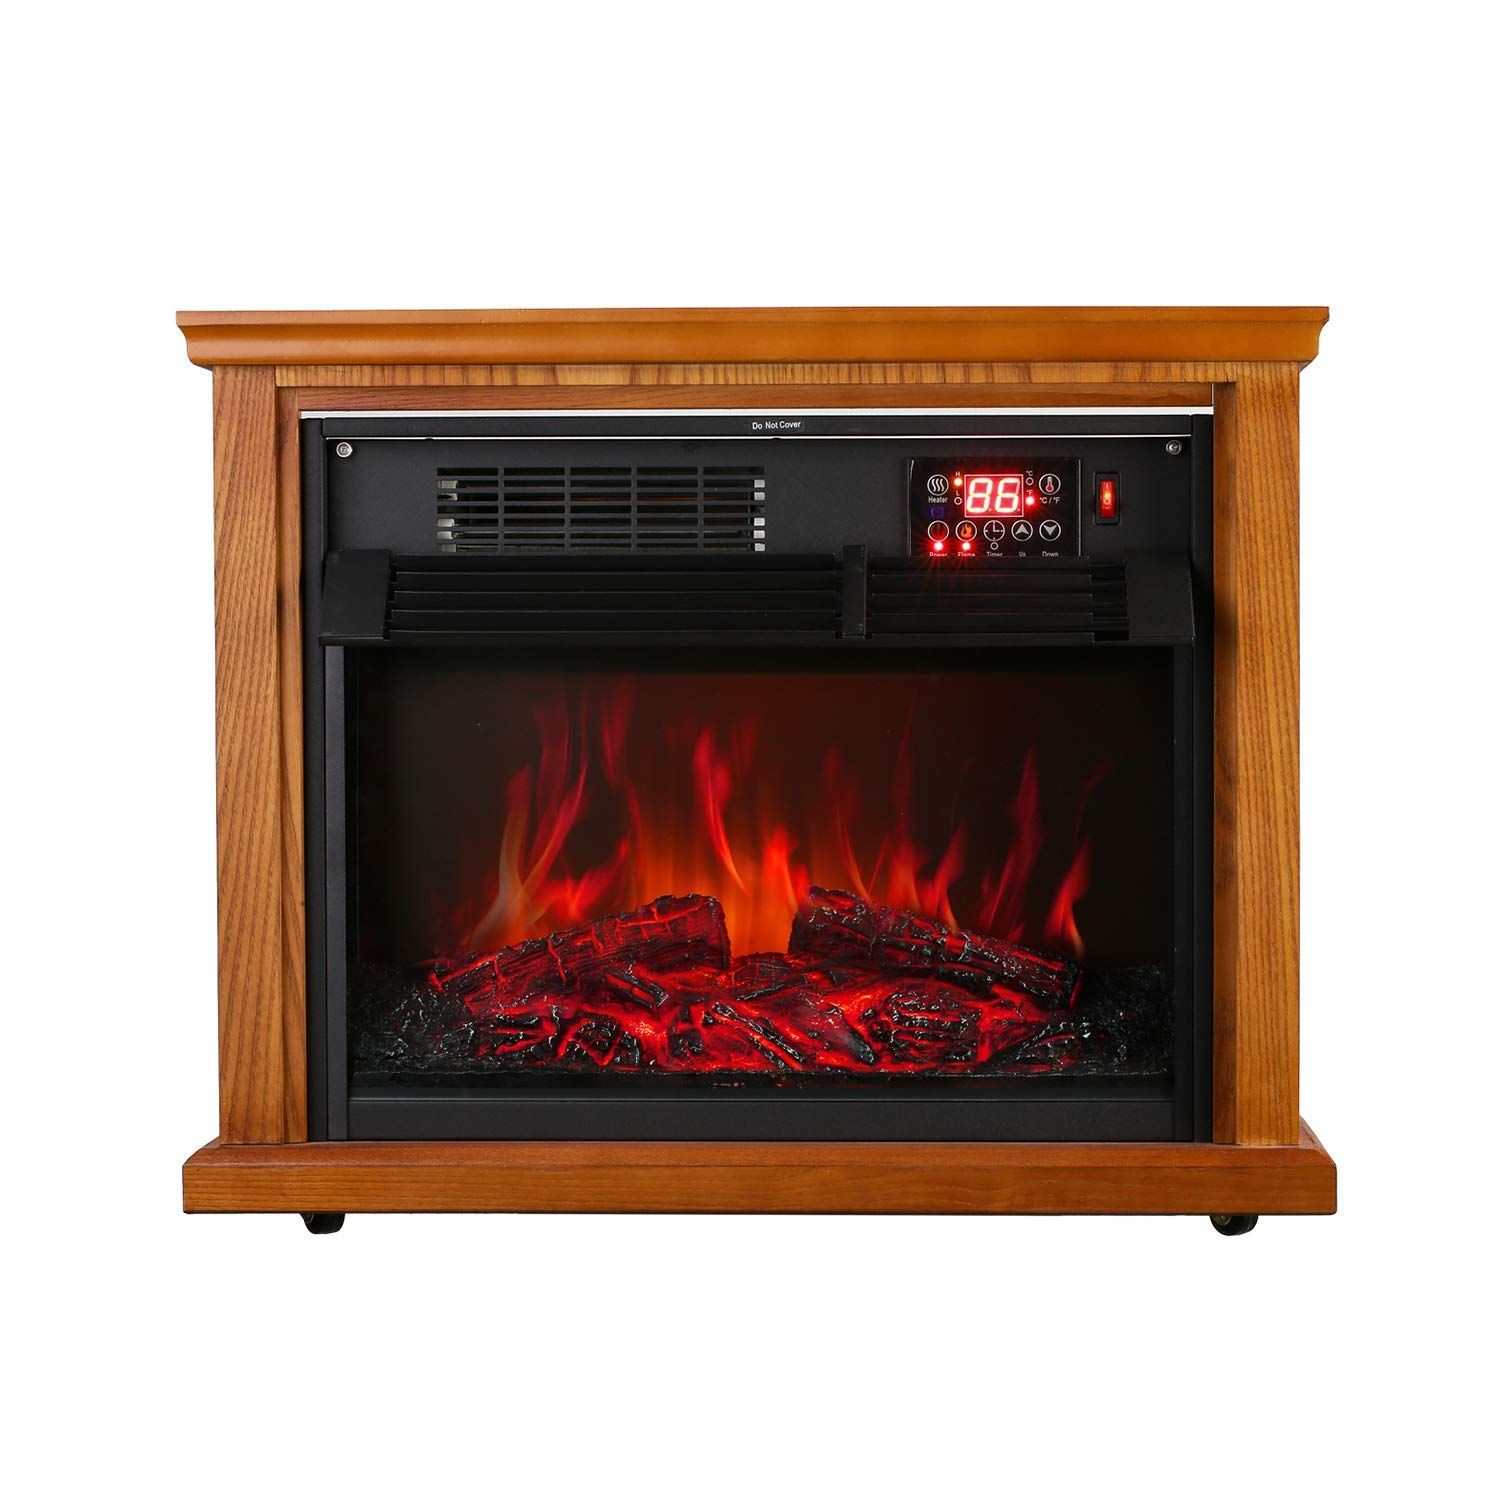 Amazoncom Ainfox Electric Fireplace Heater 1000w 1500w Infrared